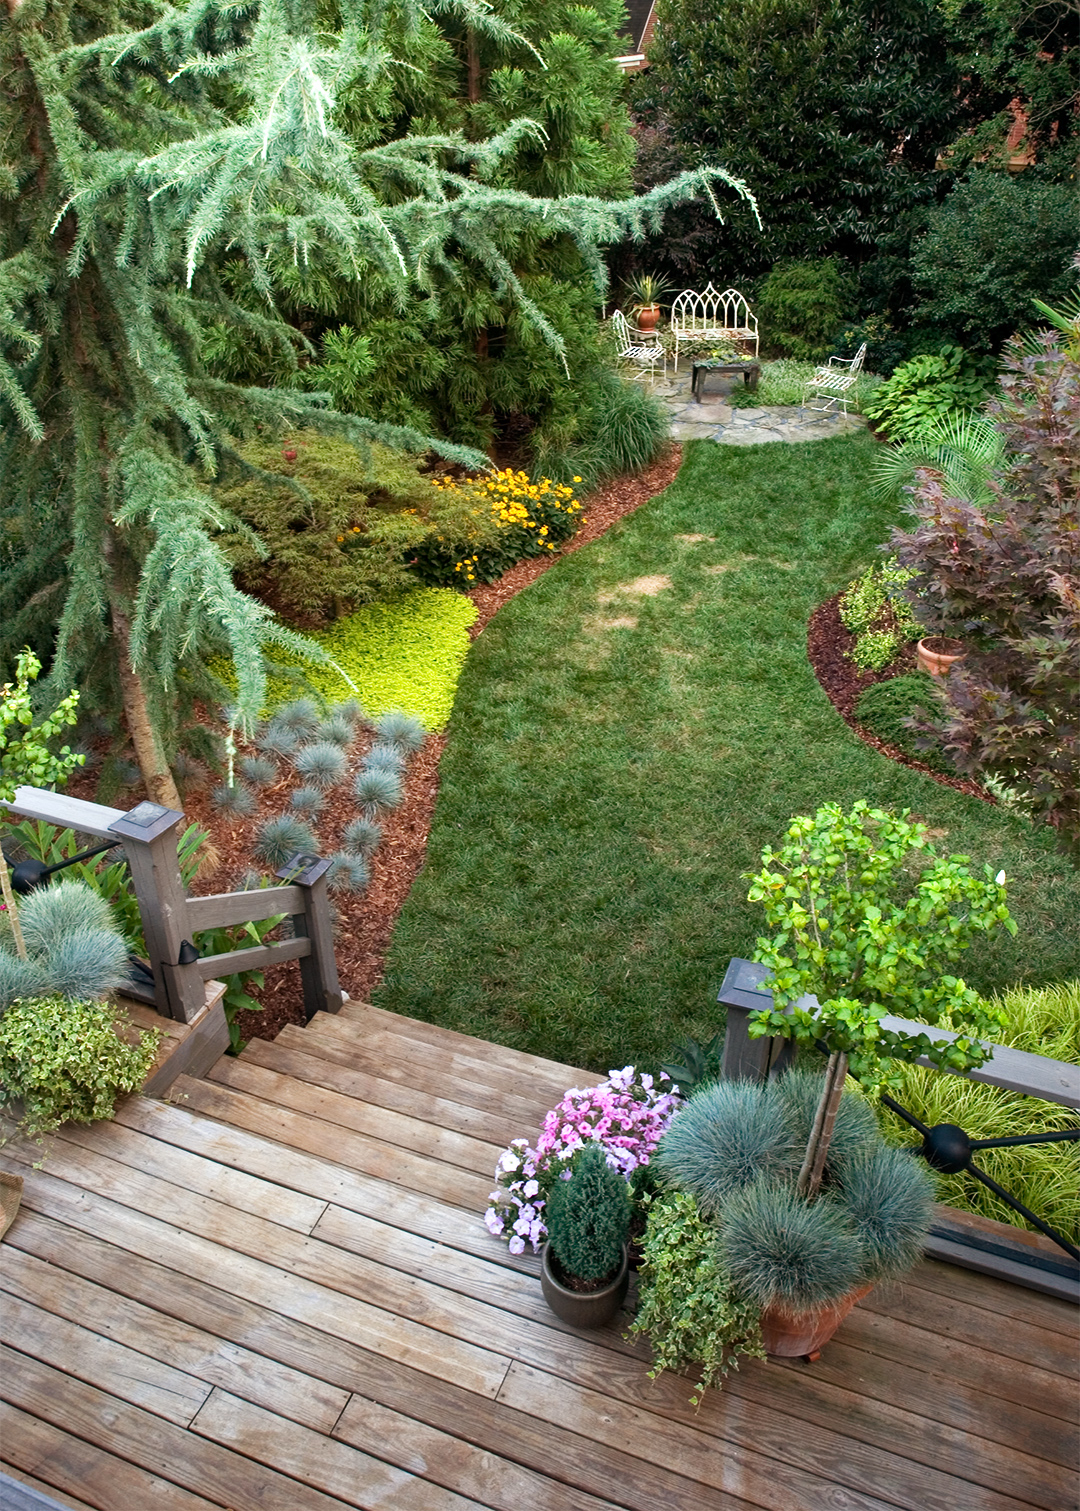 Easy Landscaping Ideas with 14 Smart Concepts of How to Make Backyard Easy Landscaping Ideas